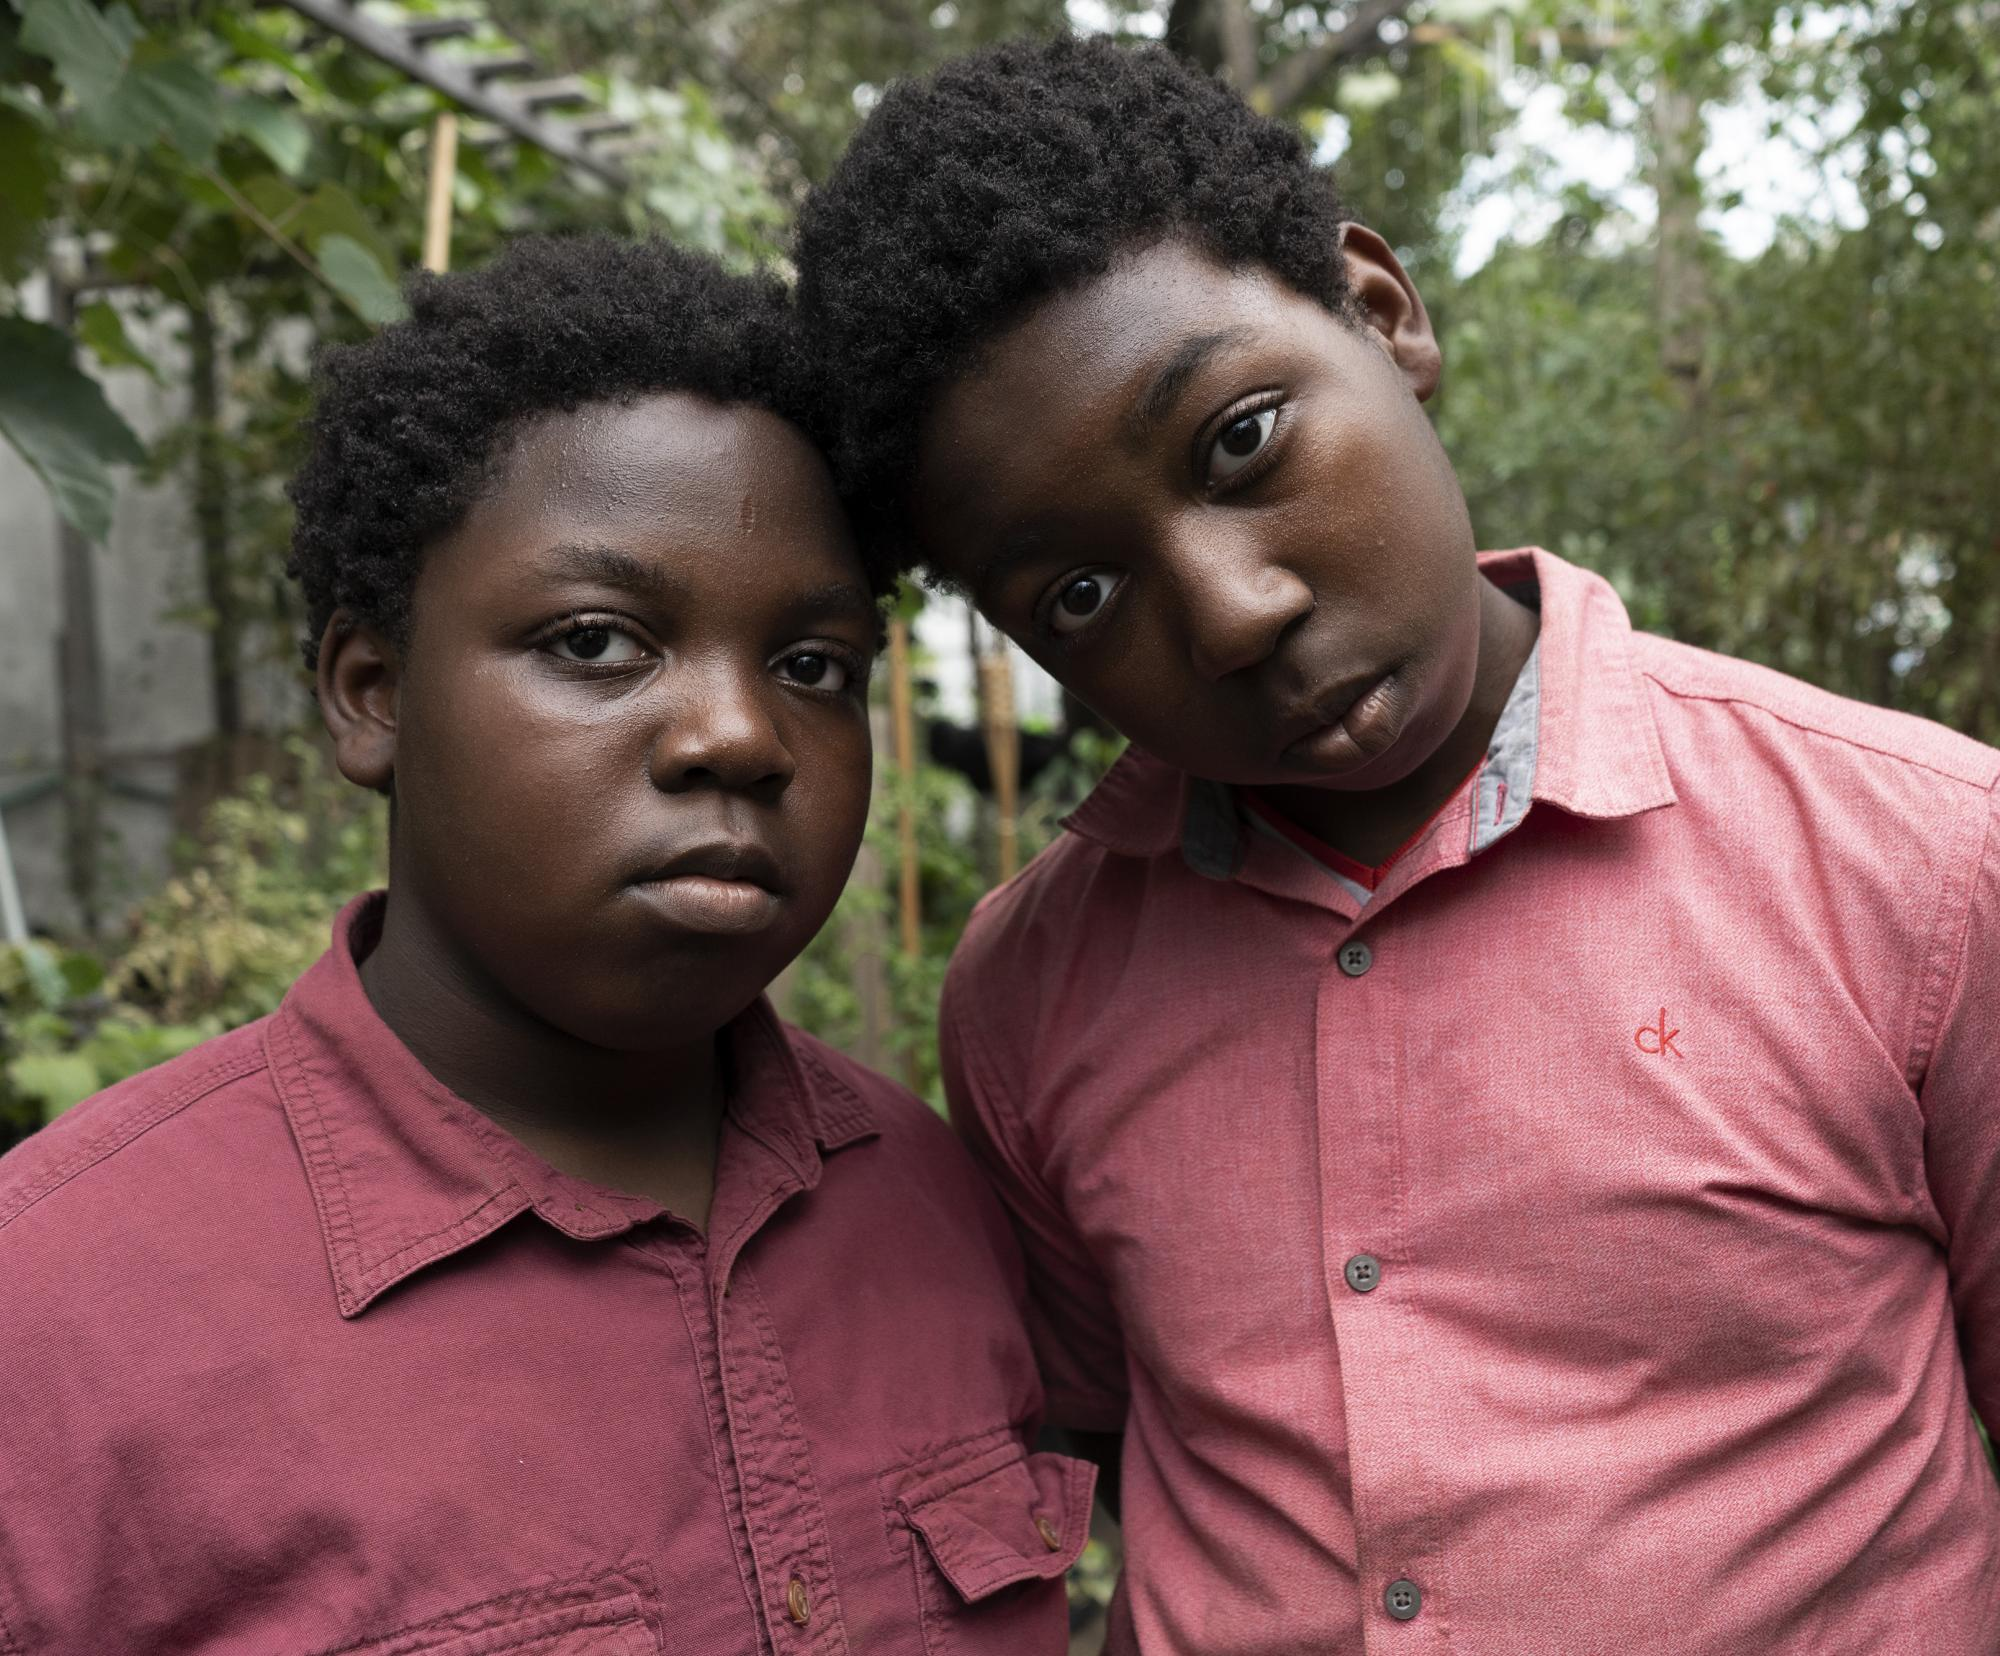 Two black children. Other is a bit taller, and is leaning on the other's head. Both have a light red collared shirt and both are looking straight into the camera.